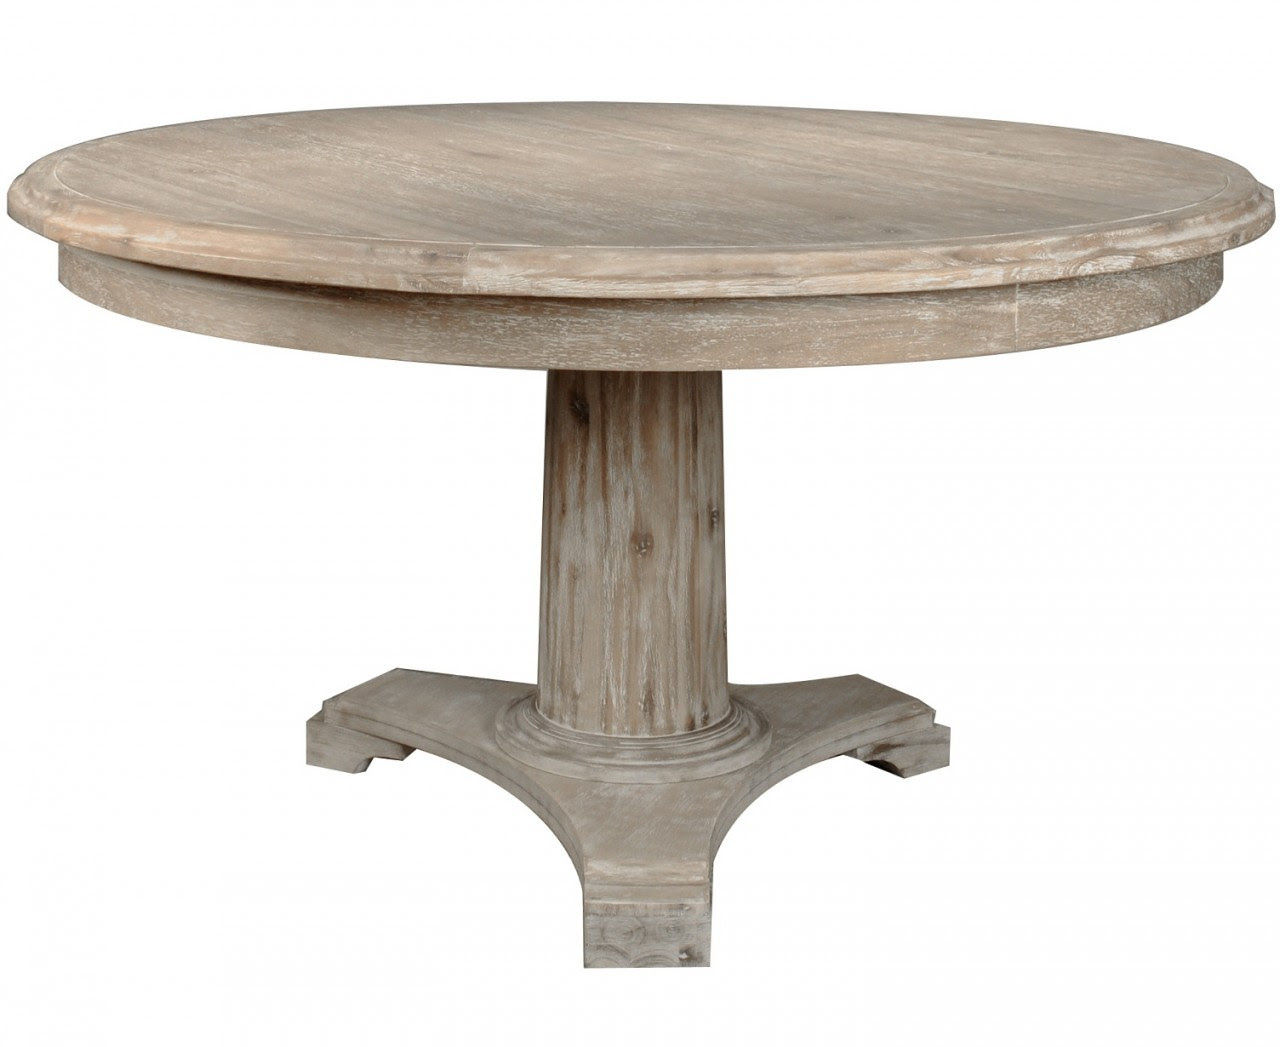 Round Wooden Kitchen Table Distressed Wood Round Kitchen Table Cliff Kitchen